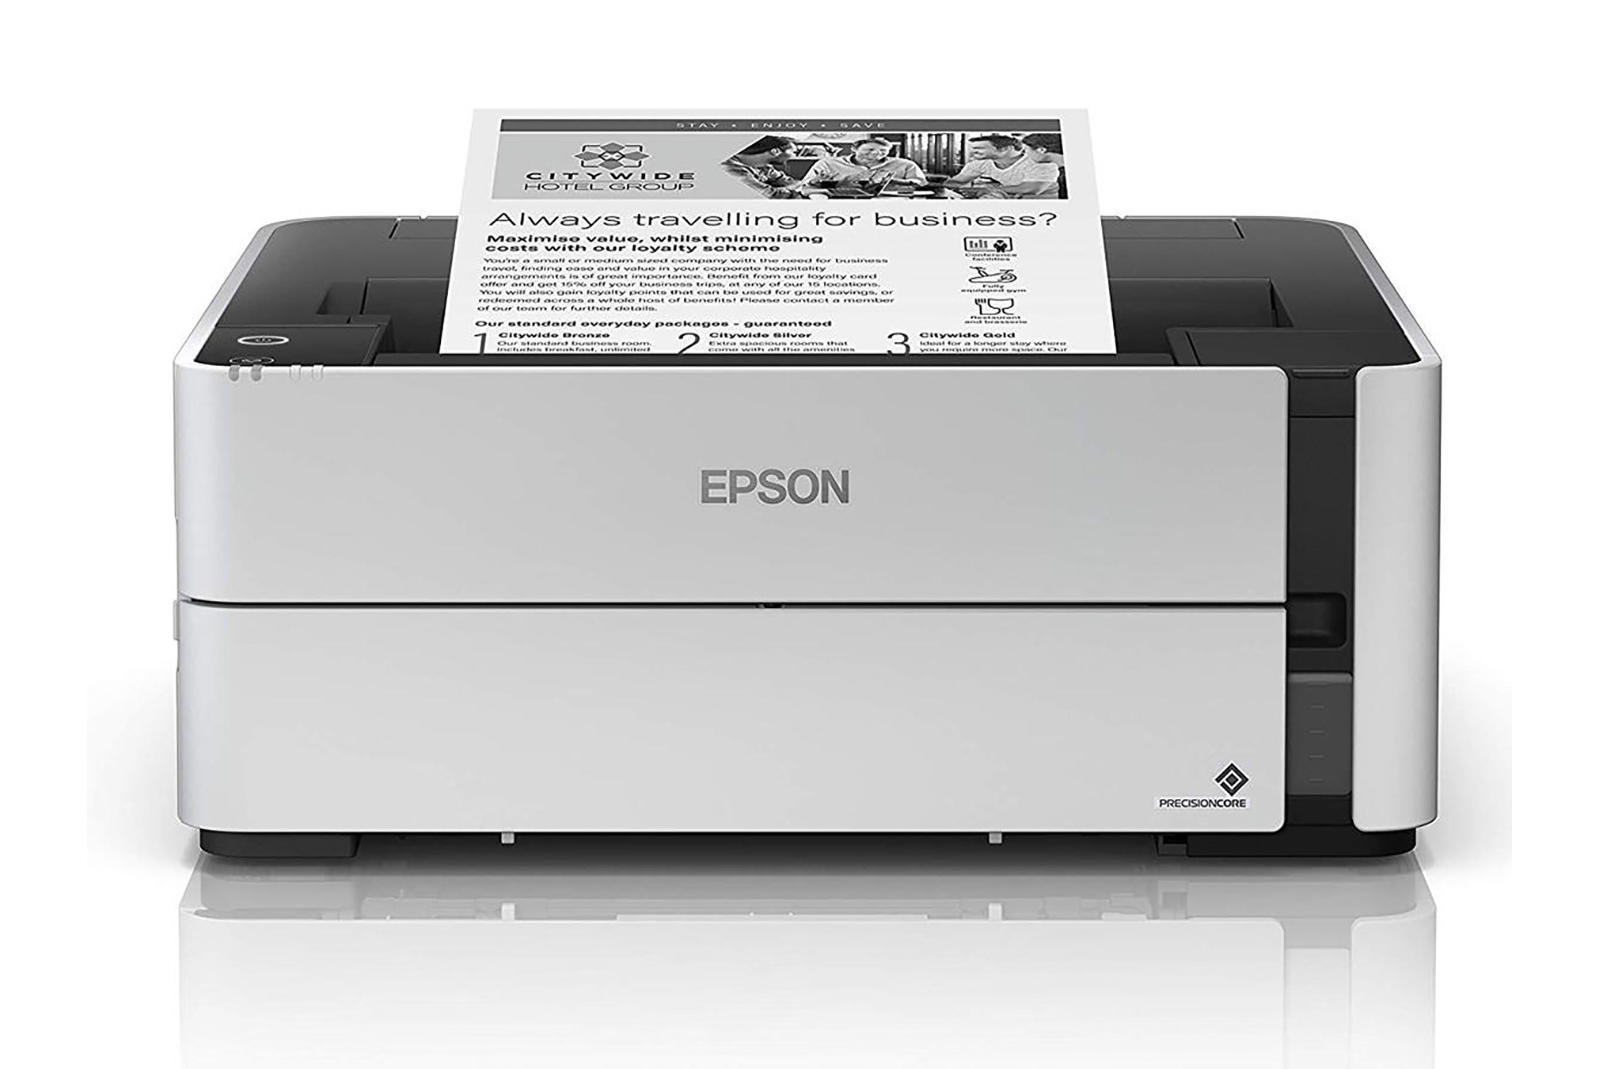 best-inkjet-printer-m1170.jpg